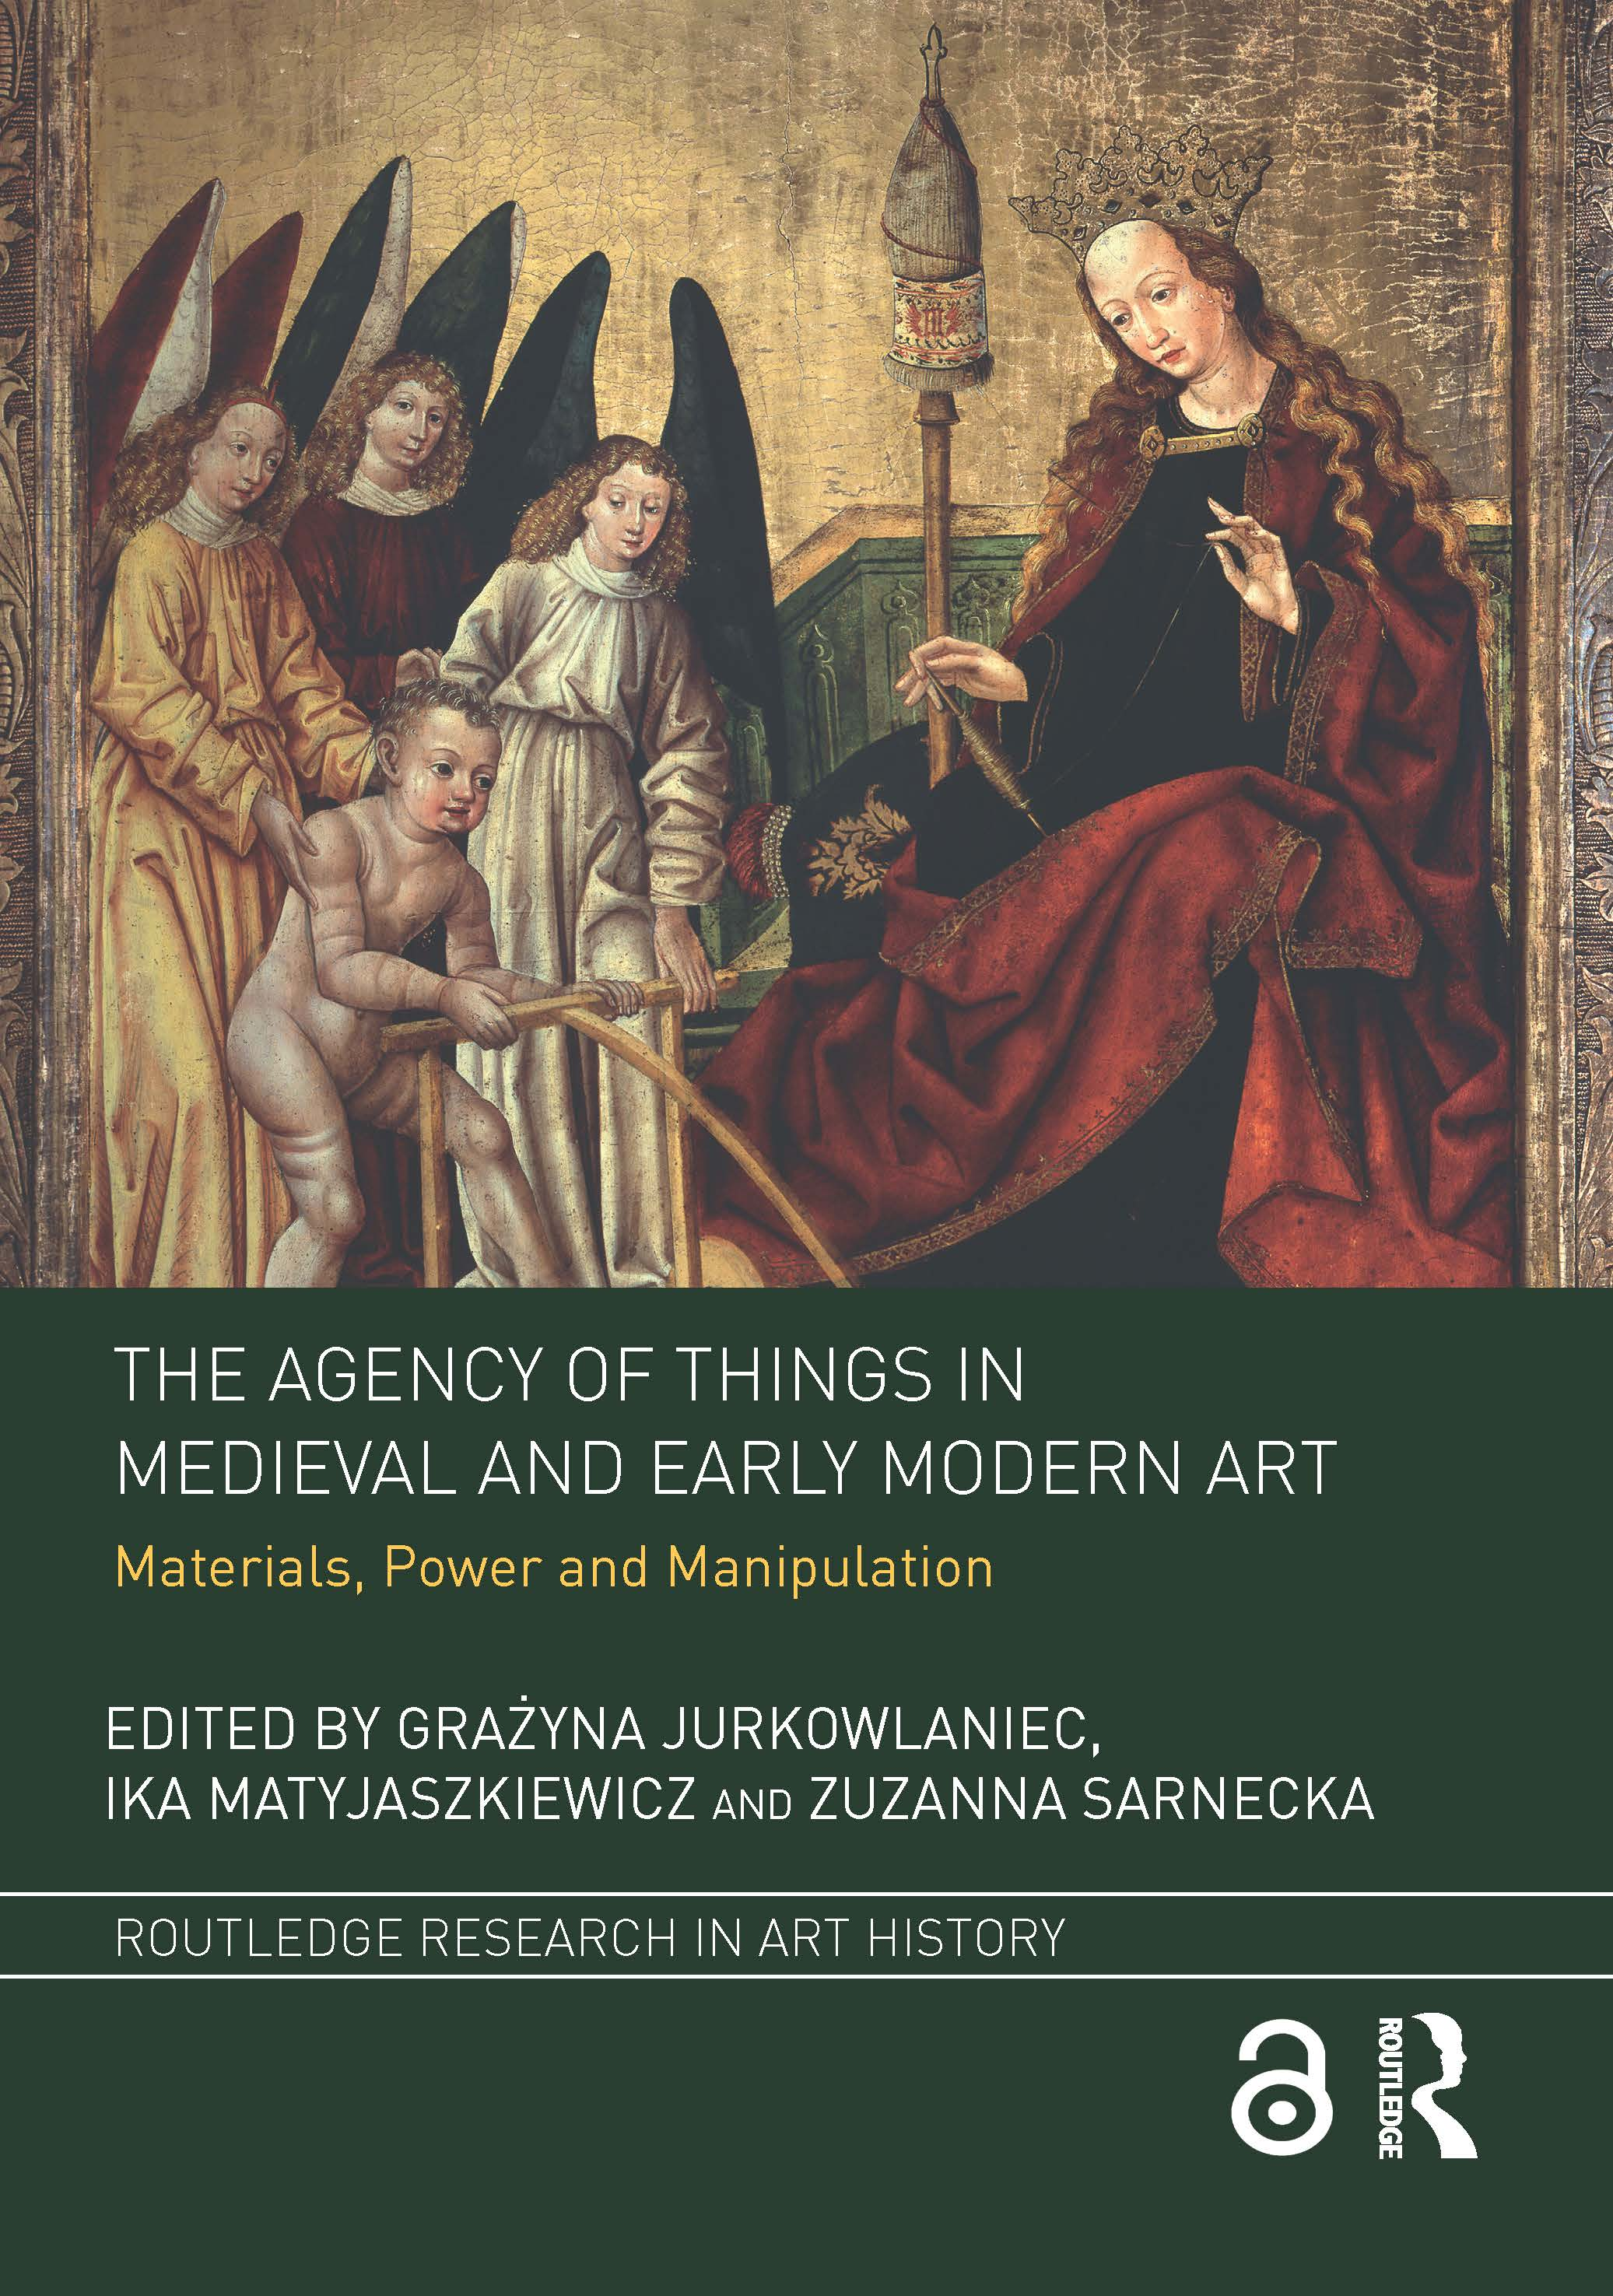 The Agency of Things in Medieval and Early Modern Art: Materials, Power and Manipulation book cover